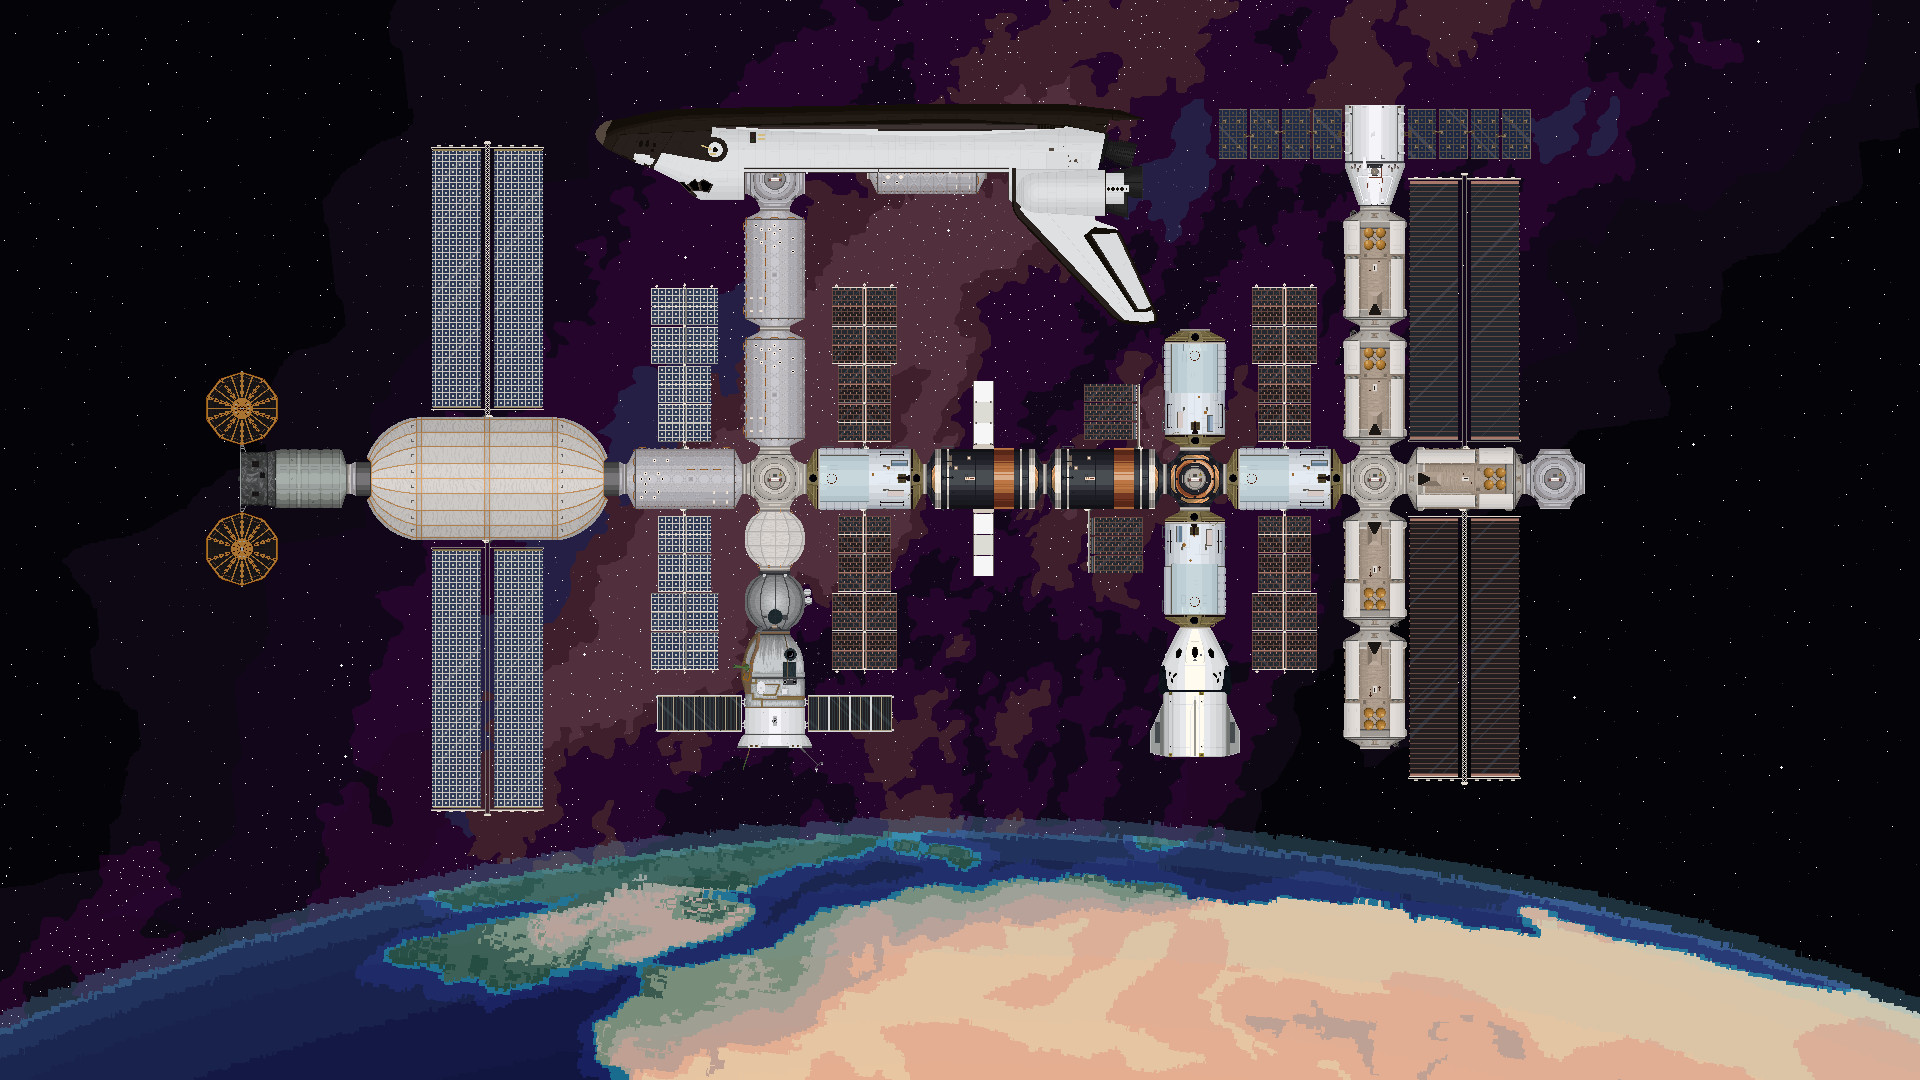 Space Station Continuum screenshot